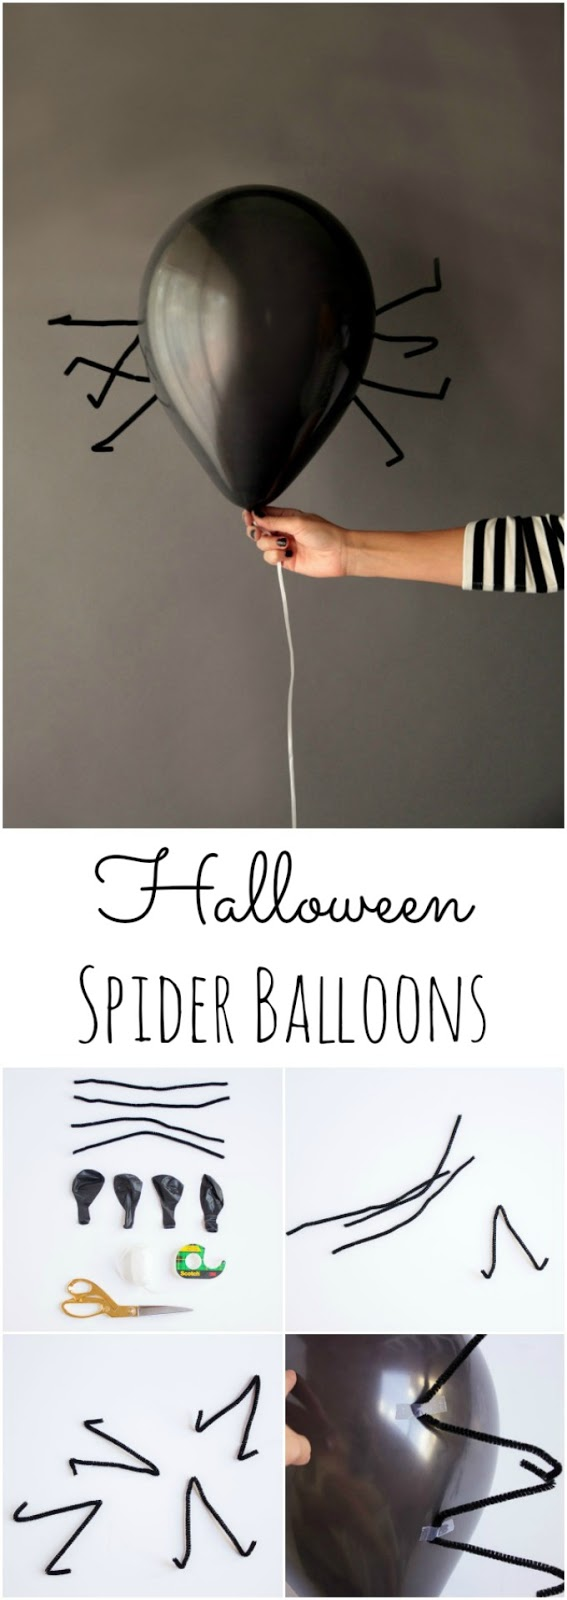 Creepy crawly Halloween spider balloons! || Design Improvised blog